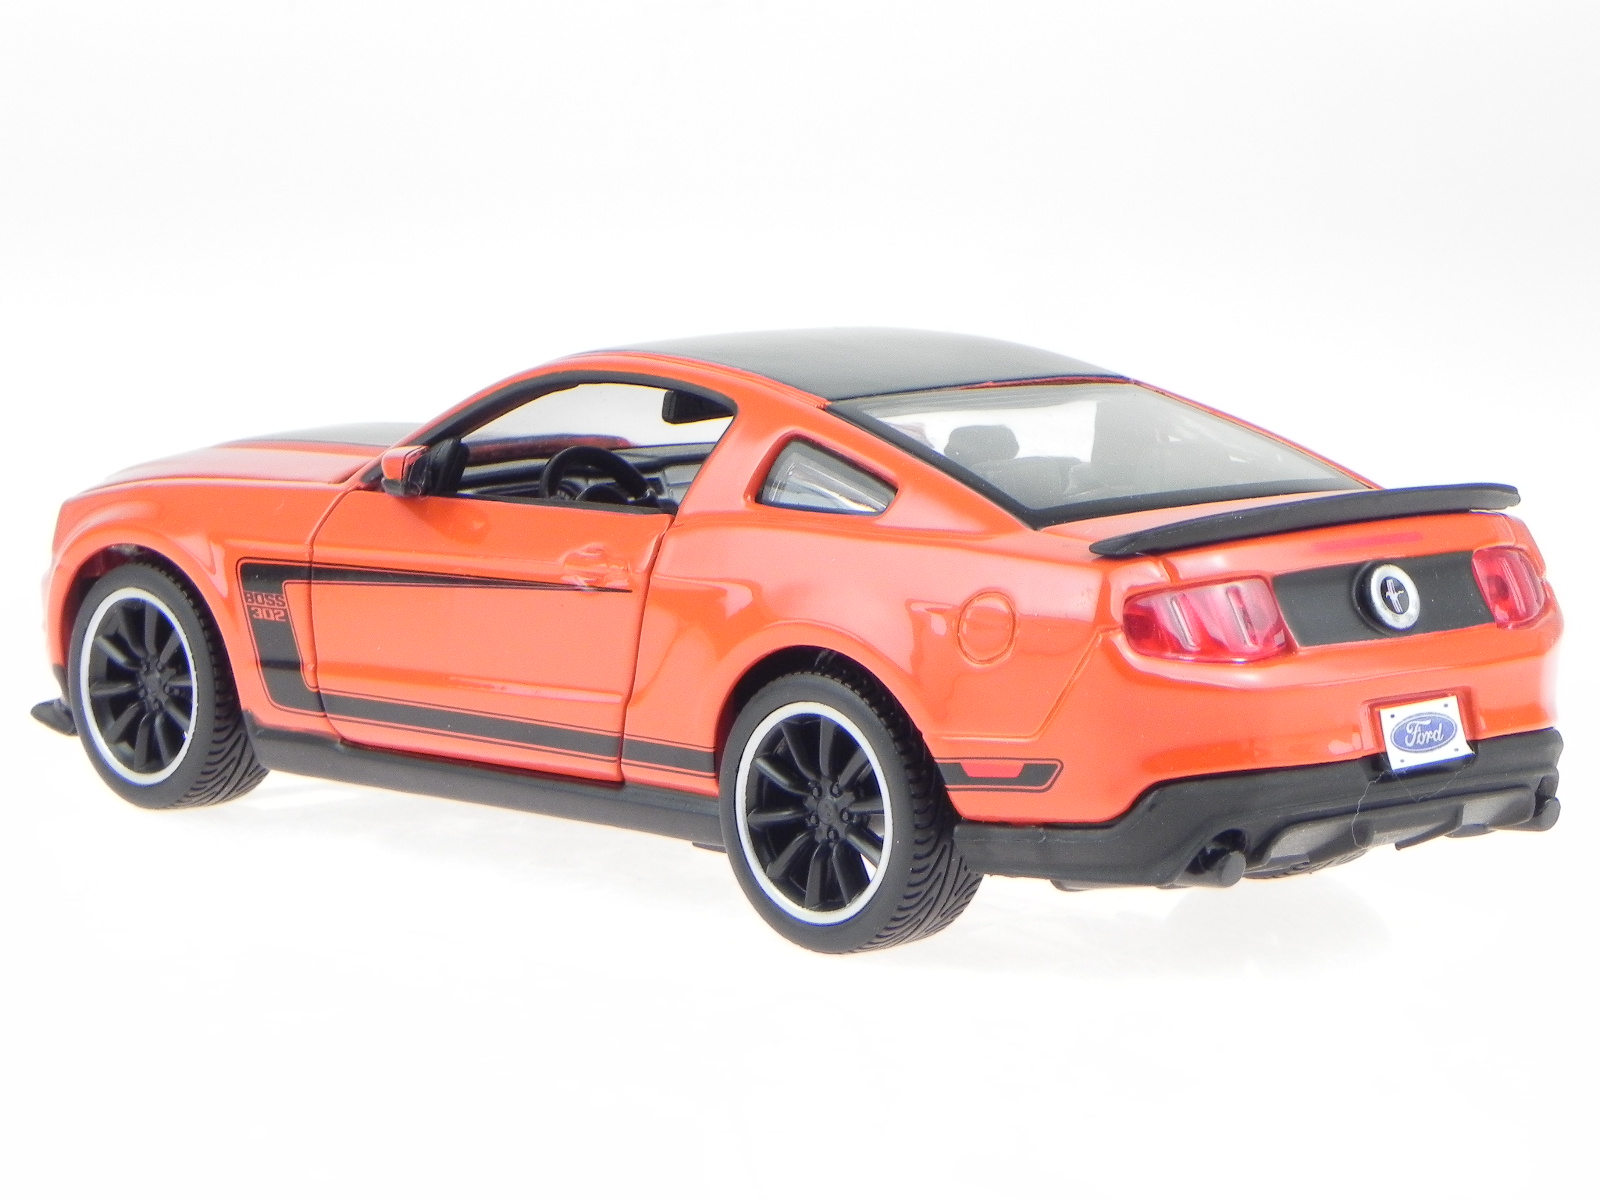 ford mustang boss 302 orange rot modellauto 39269 maisto 1. Black Bedroom Furniture Sets. Home Design Ideas